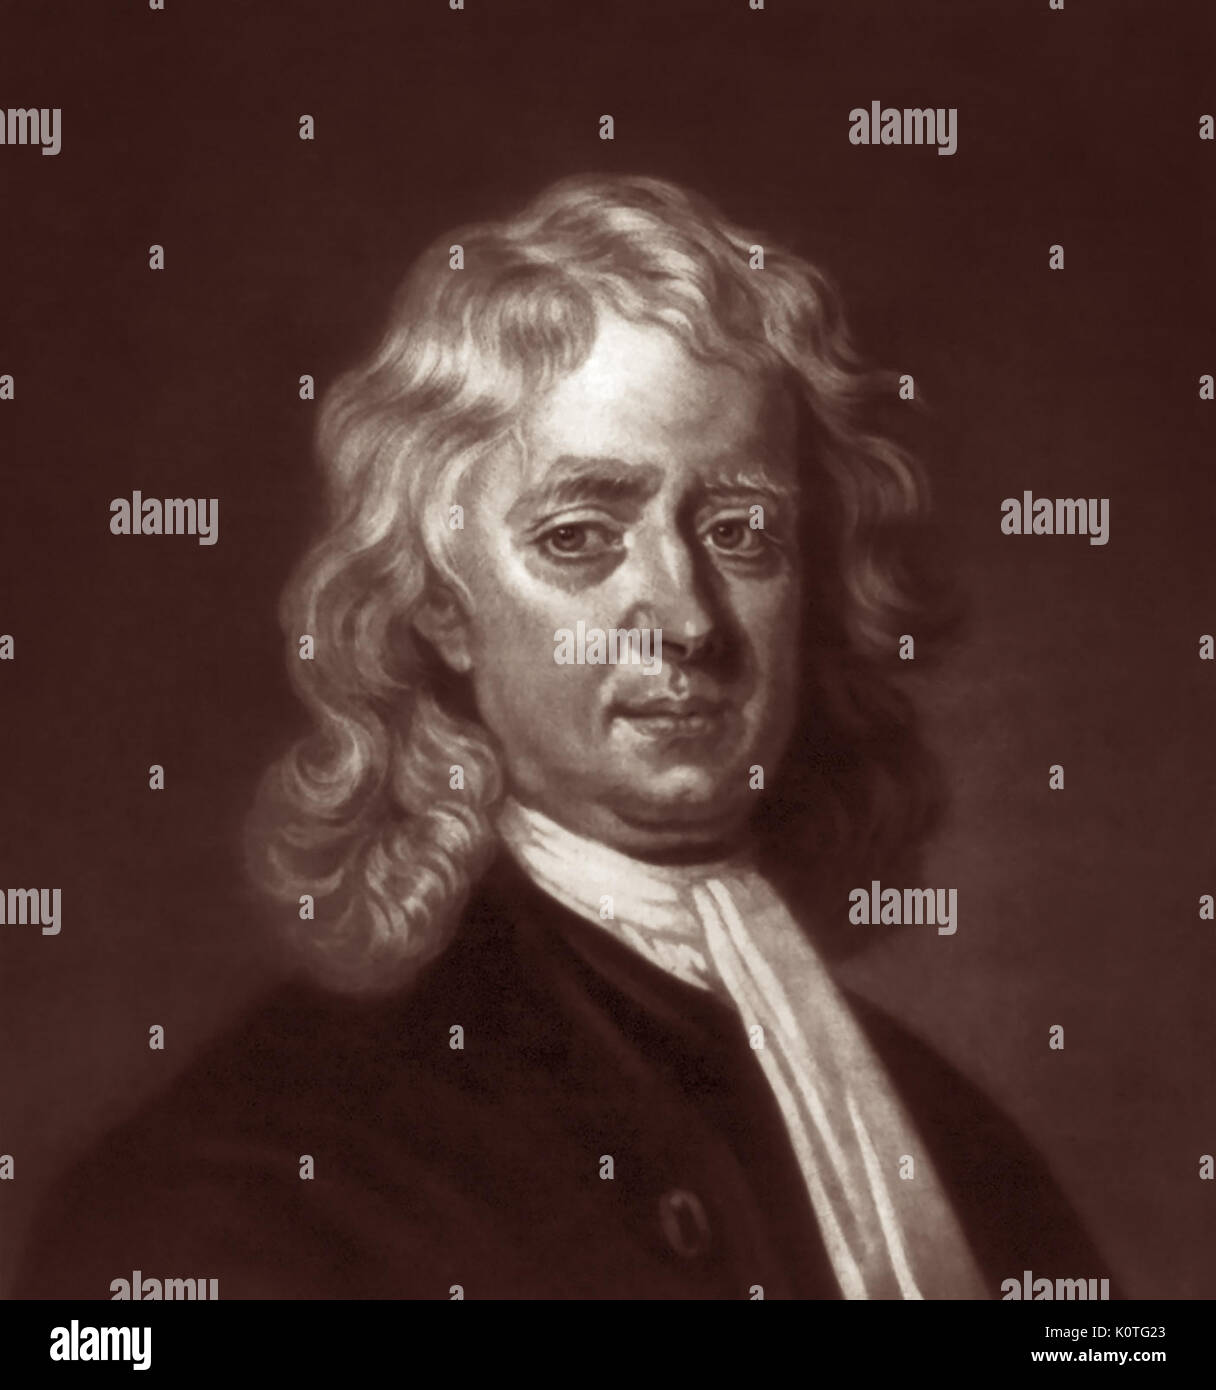 Sir Isaac Newton PRS (1643-1727) was an English mathematician, astronomer, and physicist who invented calculus and discovered the laws of gravity and motion. Newton was a key figure in the scientific revolution and is widely recognised as one of the most influential scientists of all time. - Stock Image